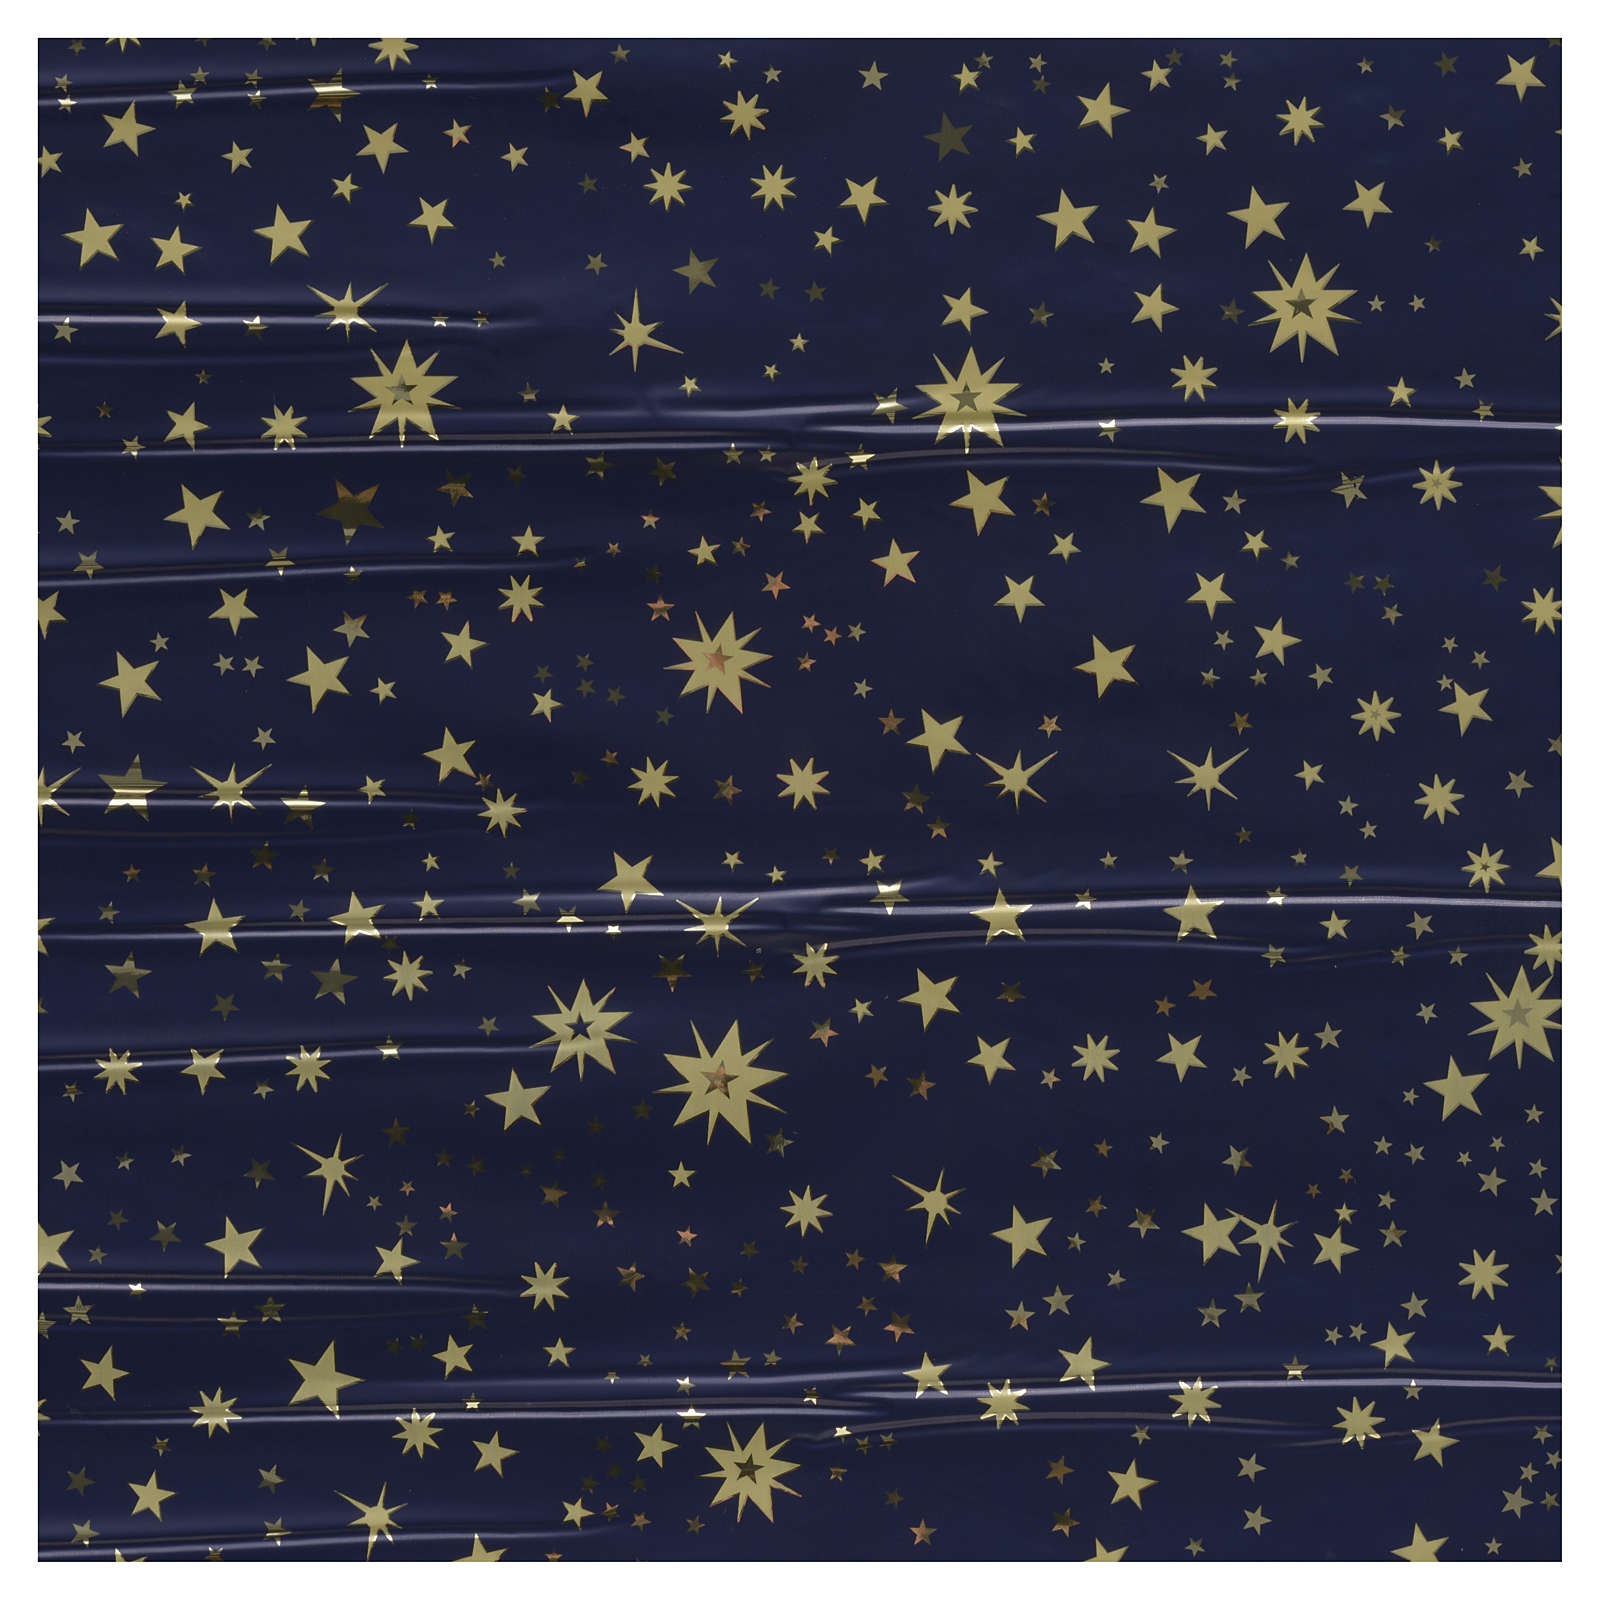 Nativity scene backdrop, sky with gold stars, roll of paper 70 x 4